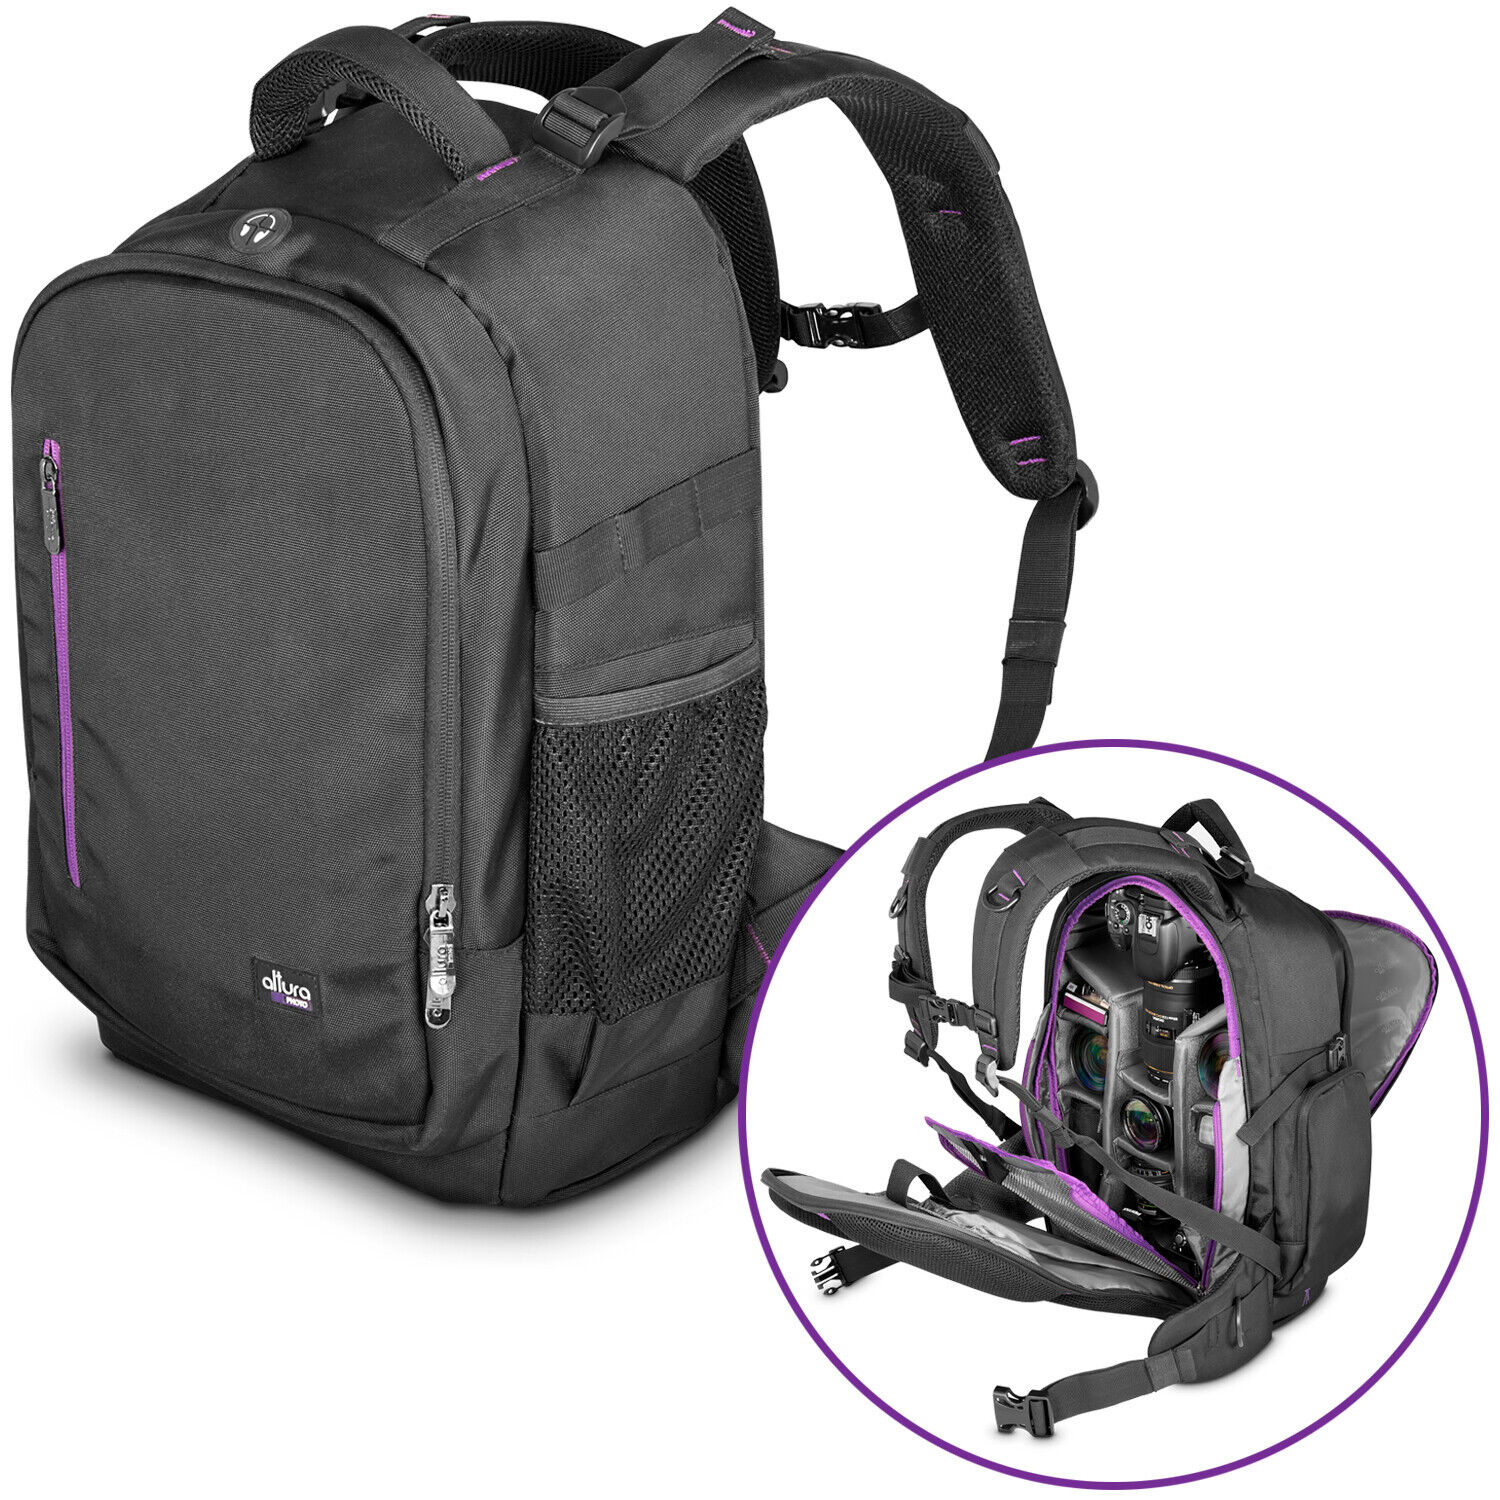 Large Camera Backpack Bag with Waterproof Cover for Canon Nikon by Altura Photo® -   10 - Large Camera Backpack Bag with Waterproof Cover for Canon Nikon by Altura Photo®